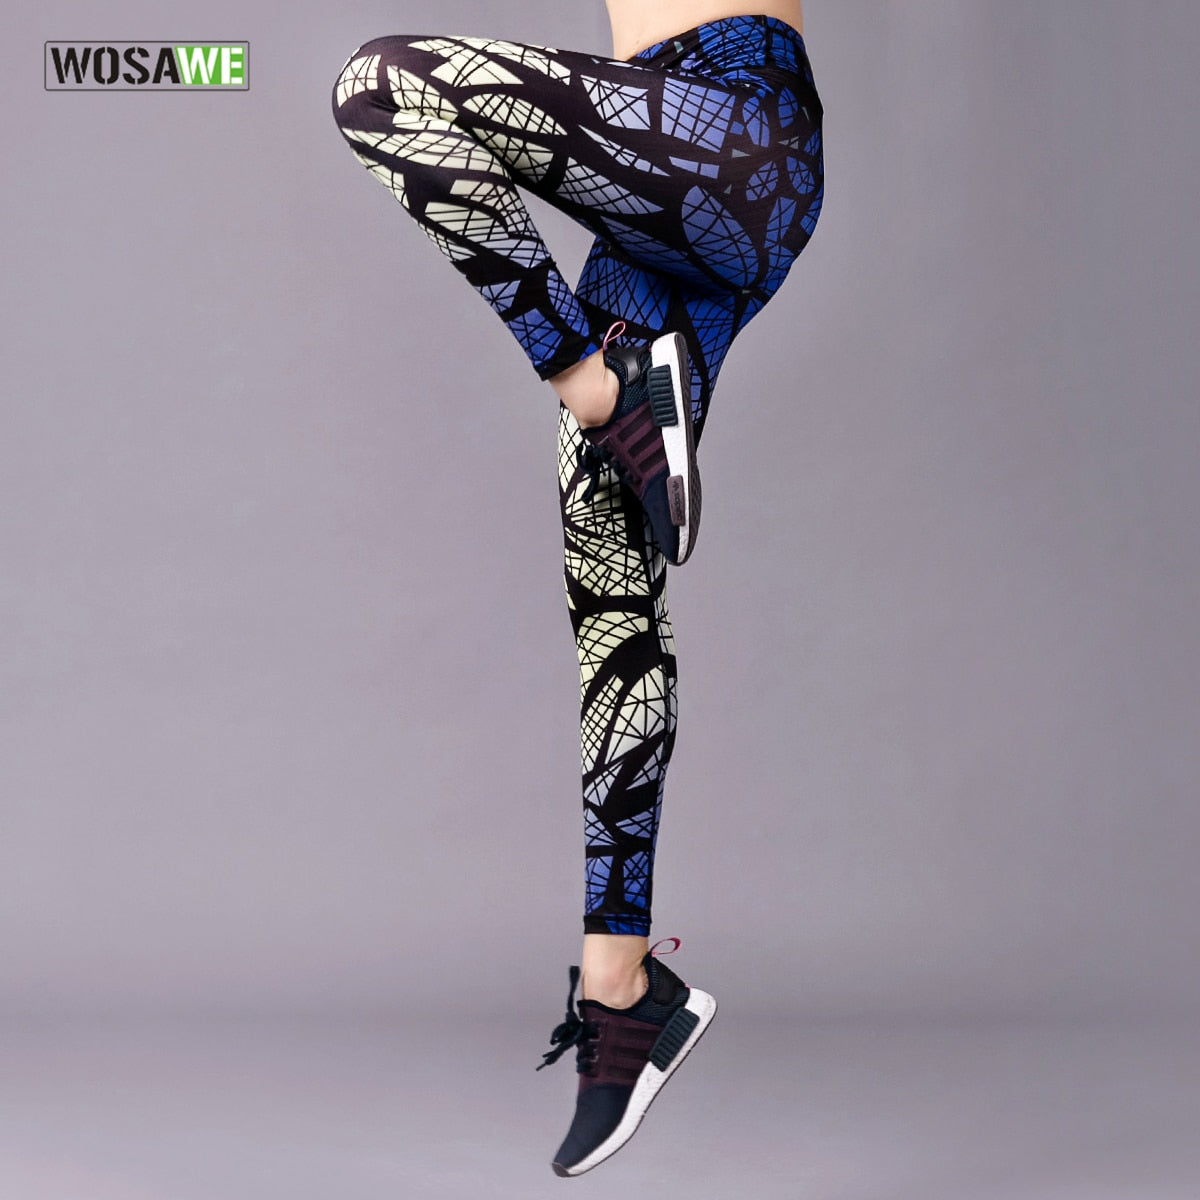 WOSAWE Printing Yoga Pants Womens Slim Compression Workout Sports Leggings Fitness Clothing Gym Trousers Training Running Tights